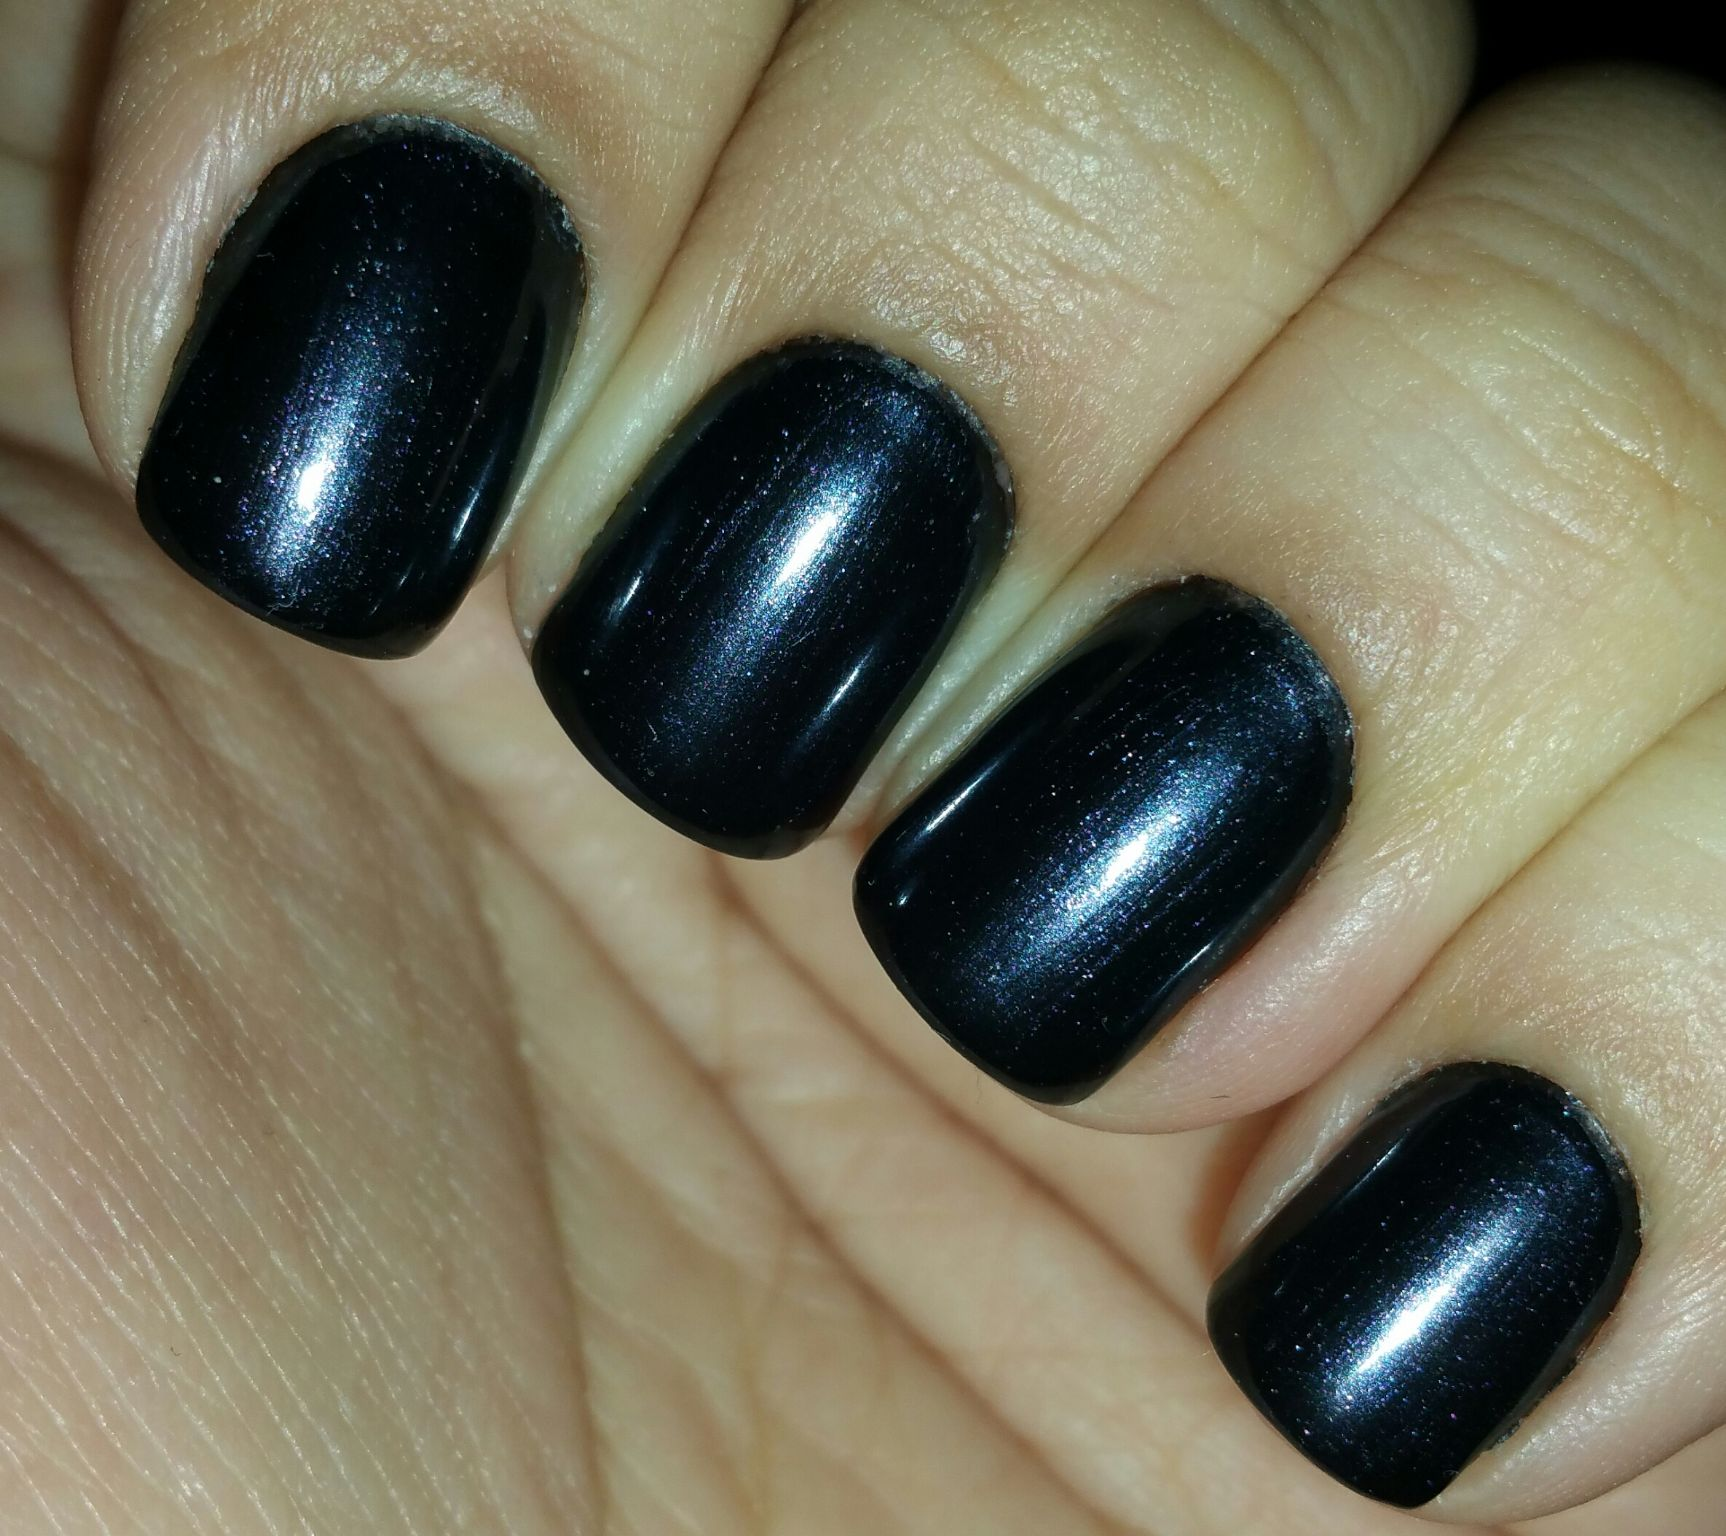 JINsoon Nail Polish in NOCTURNE reviews, photos - MakeupAlley